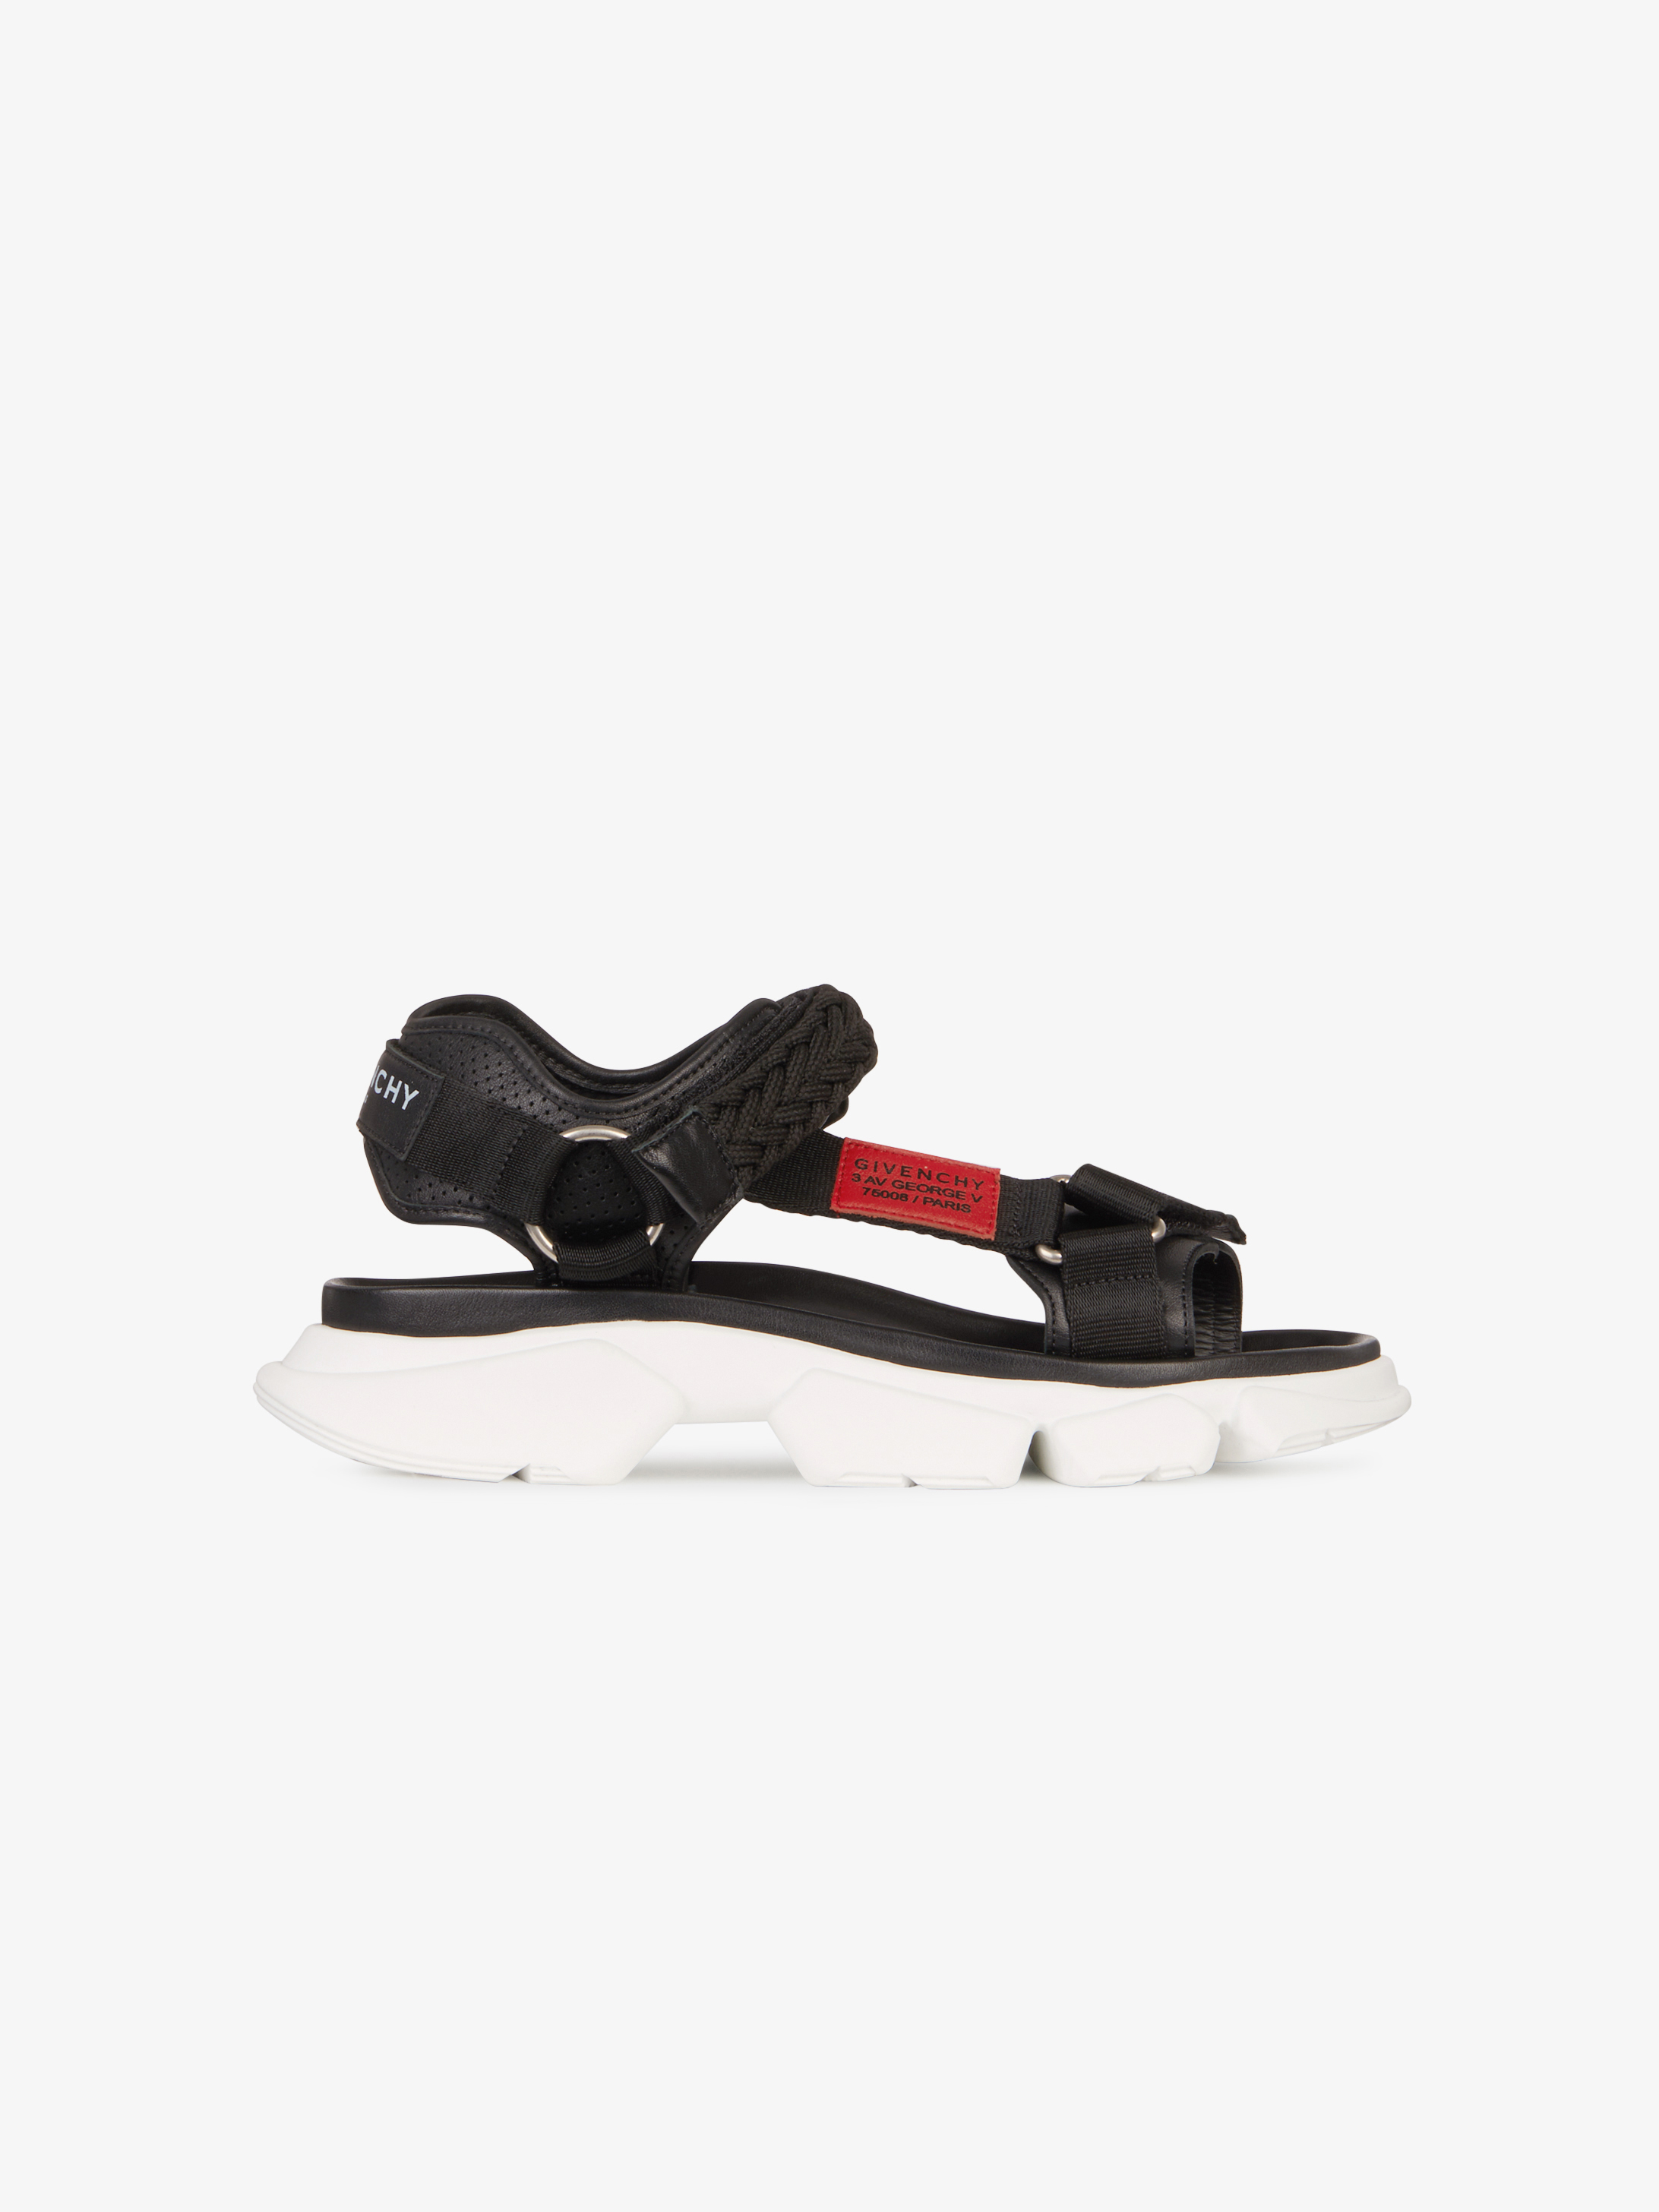 JAW sandals in leather and nylon